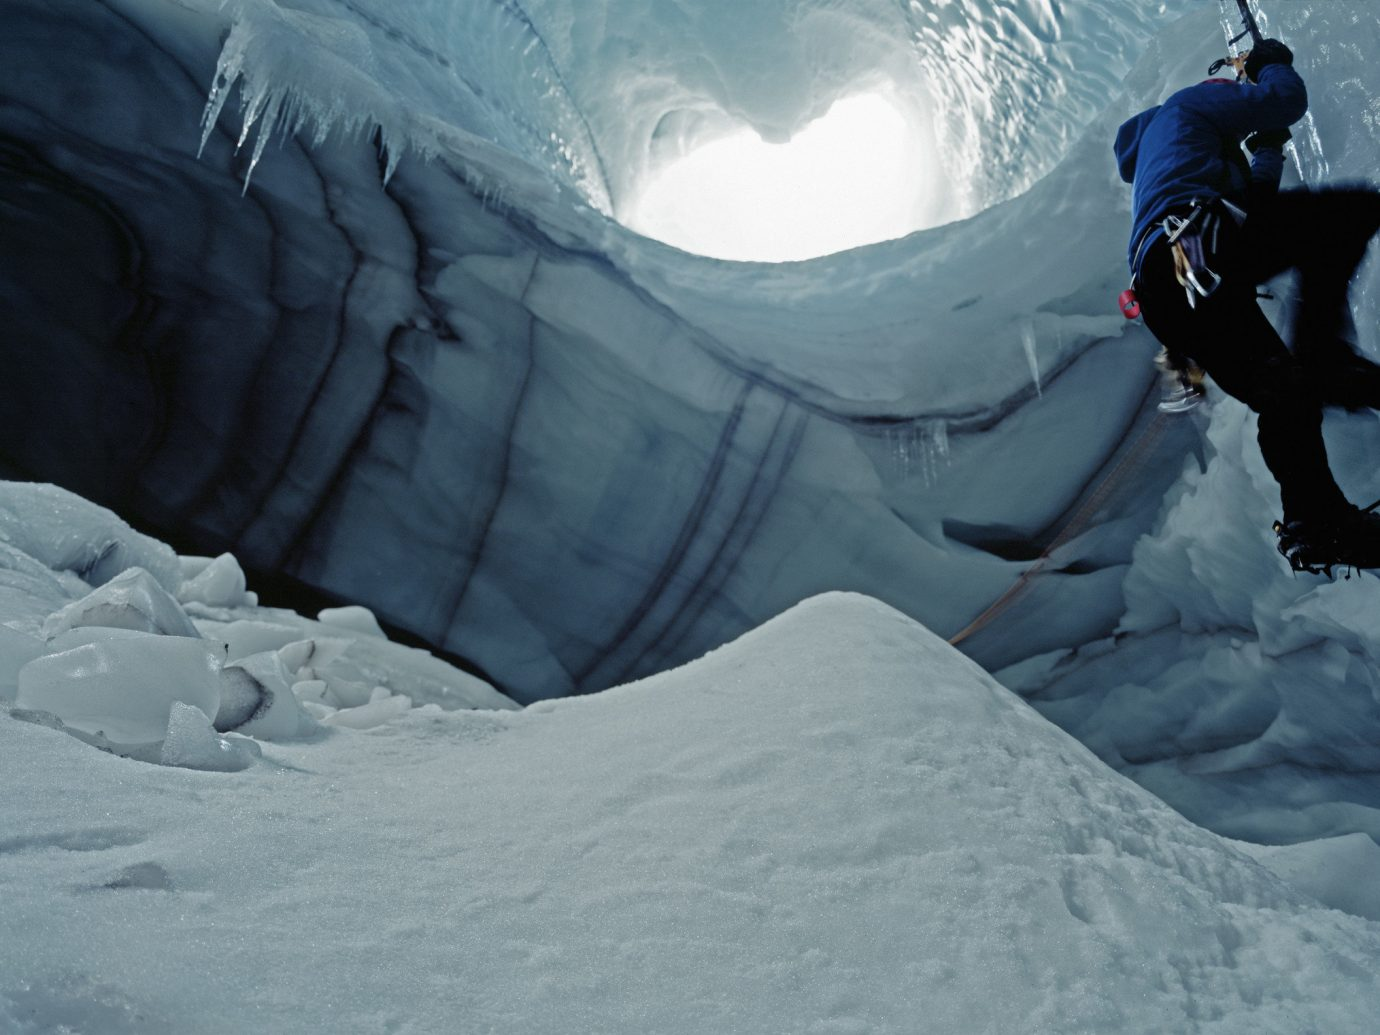 Iceland Outdoors + Adventure Trip Ideas snow Nature extreme sport ice cave Adventure ice glacial landform geological phenomenon freezing mountaineering mountaineer arctic ice cap glacier terrain polar ice cap sky ridge mountain formation summit ice climbing jumping Winter